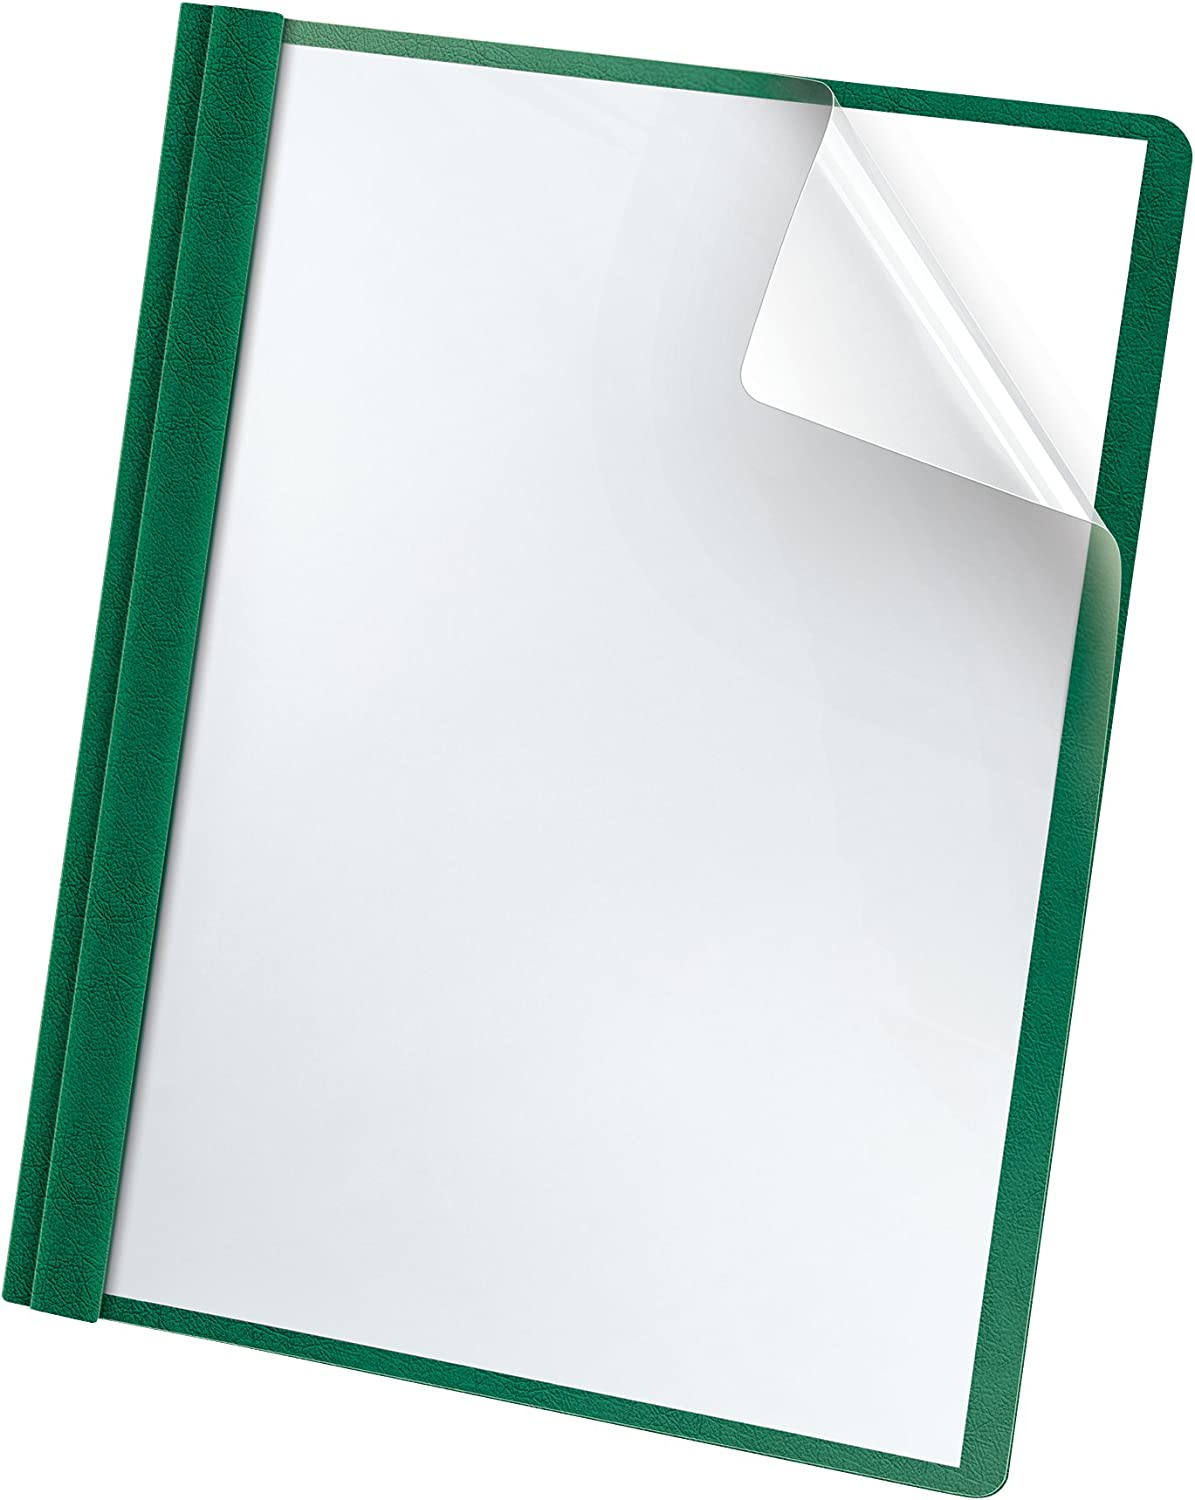 Oxford Premium Clear Front Report Covers, Dark Green, Letter Size, 25 per box (58817) : Business Report Covers : Office Products